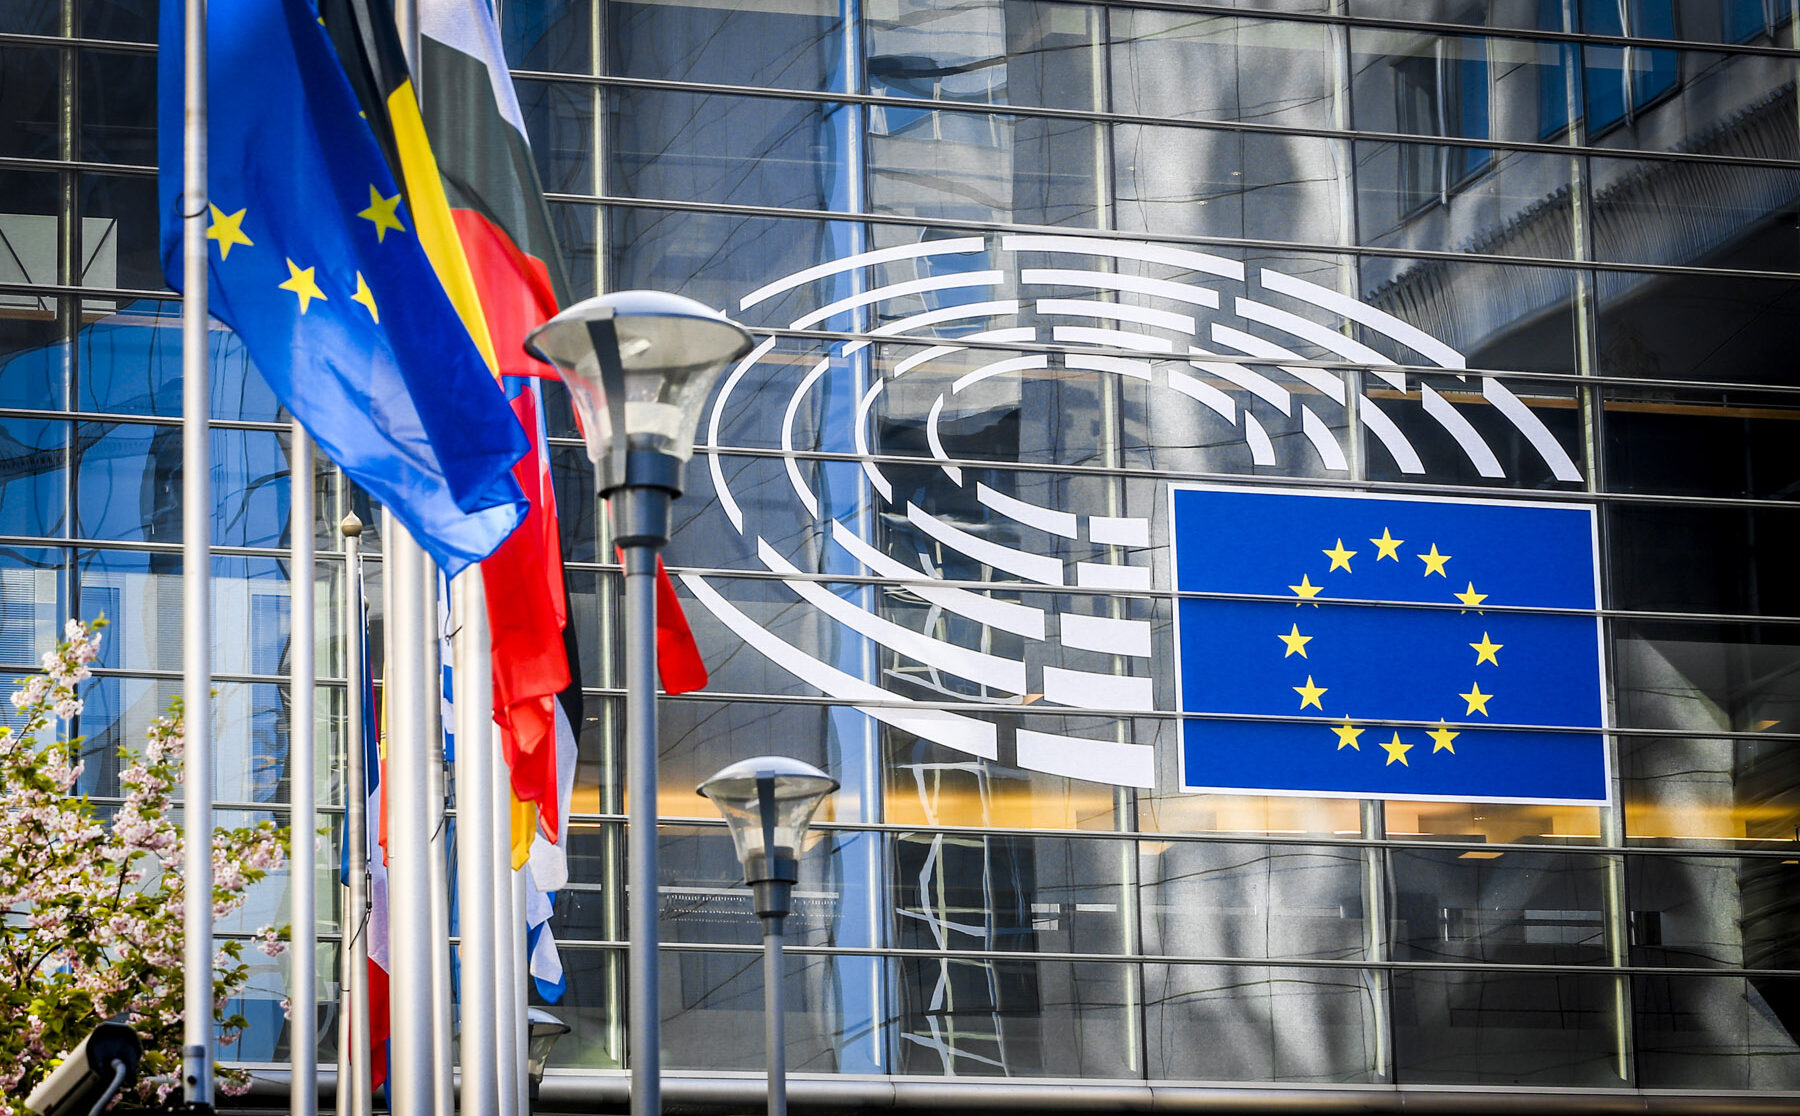 Kazakhstan: the EP's new resolution urges for sanctions against human rights violators